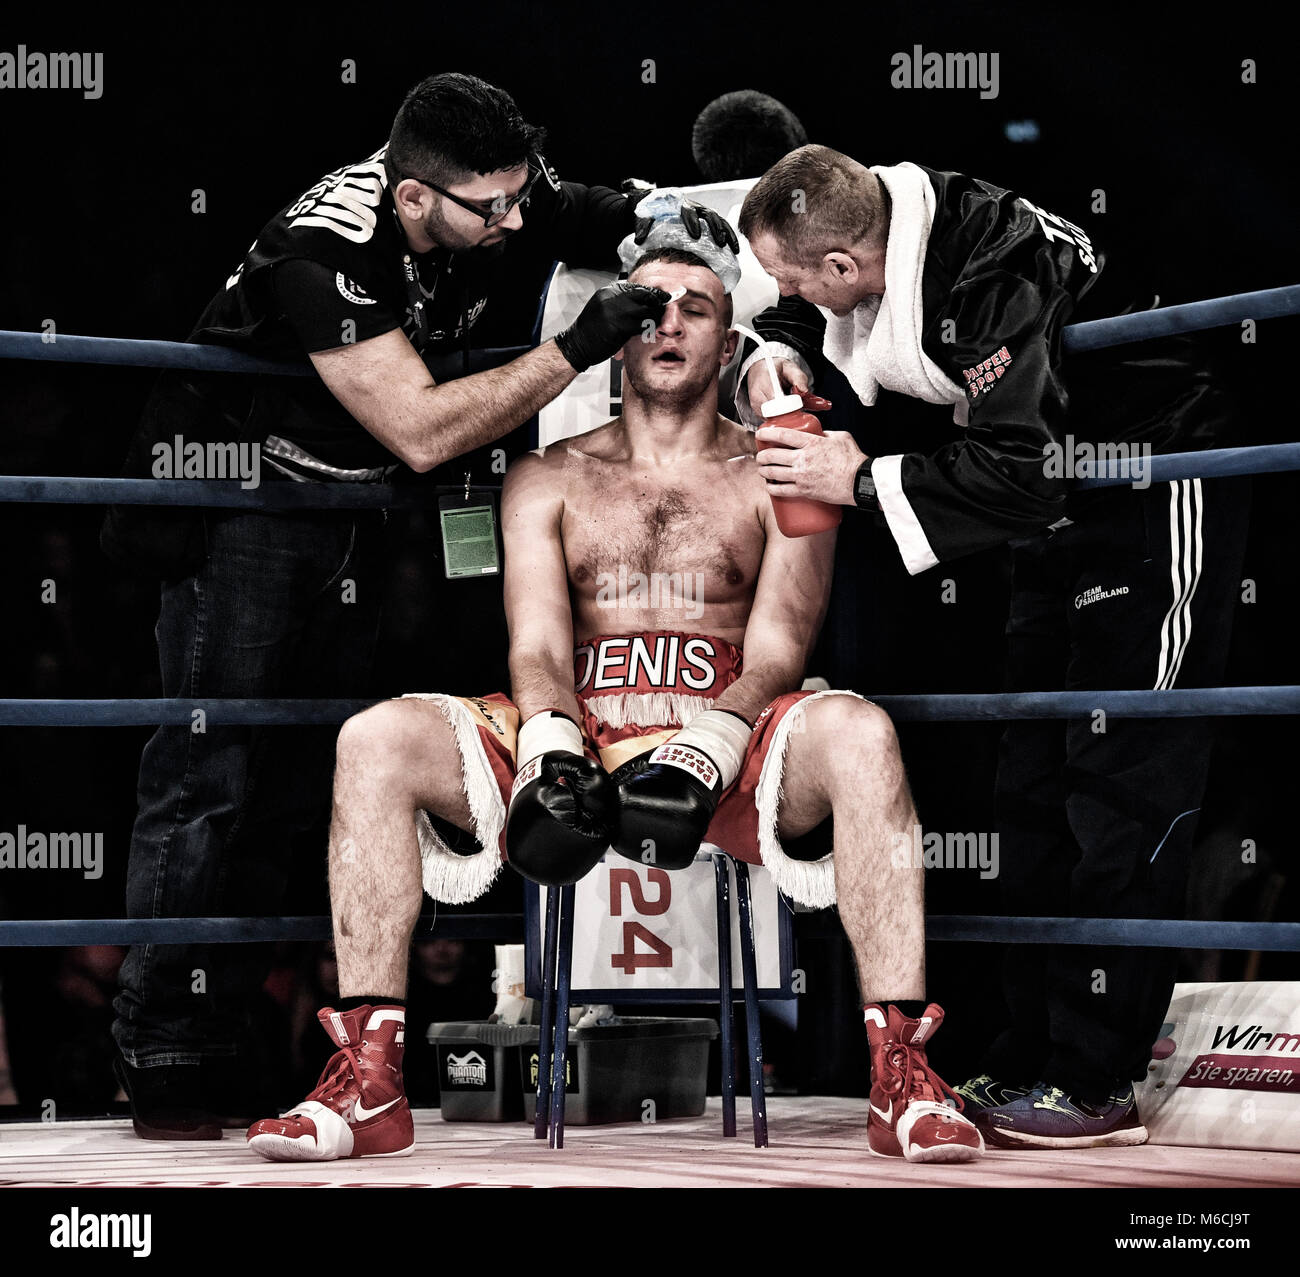 Boxing, Denis Radovan in his corner, cut over eye treatment, MHP-Arena, Ludwigsburg, Germany Stock Photo